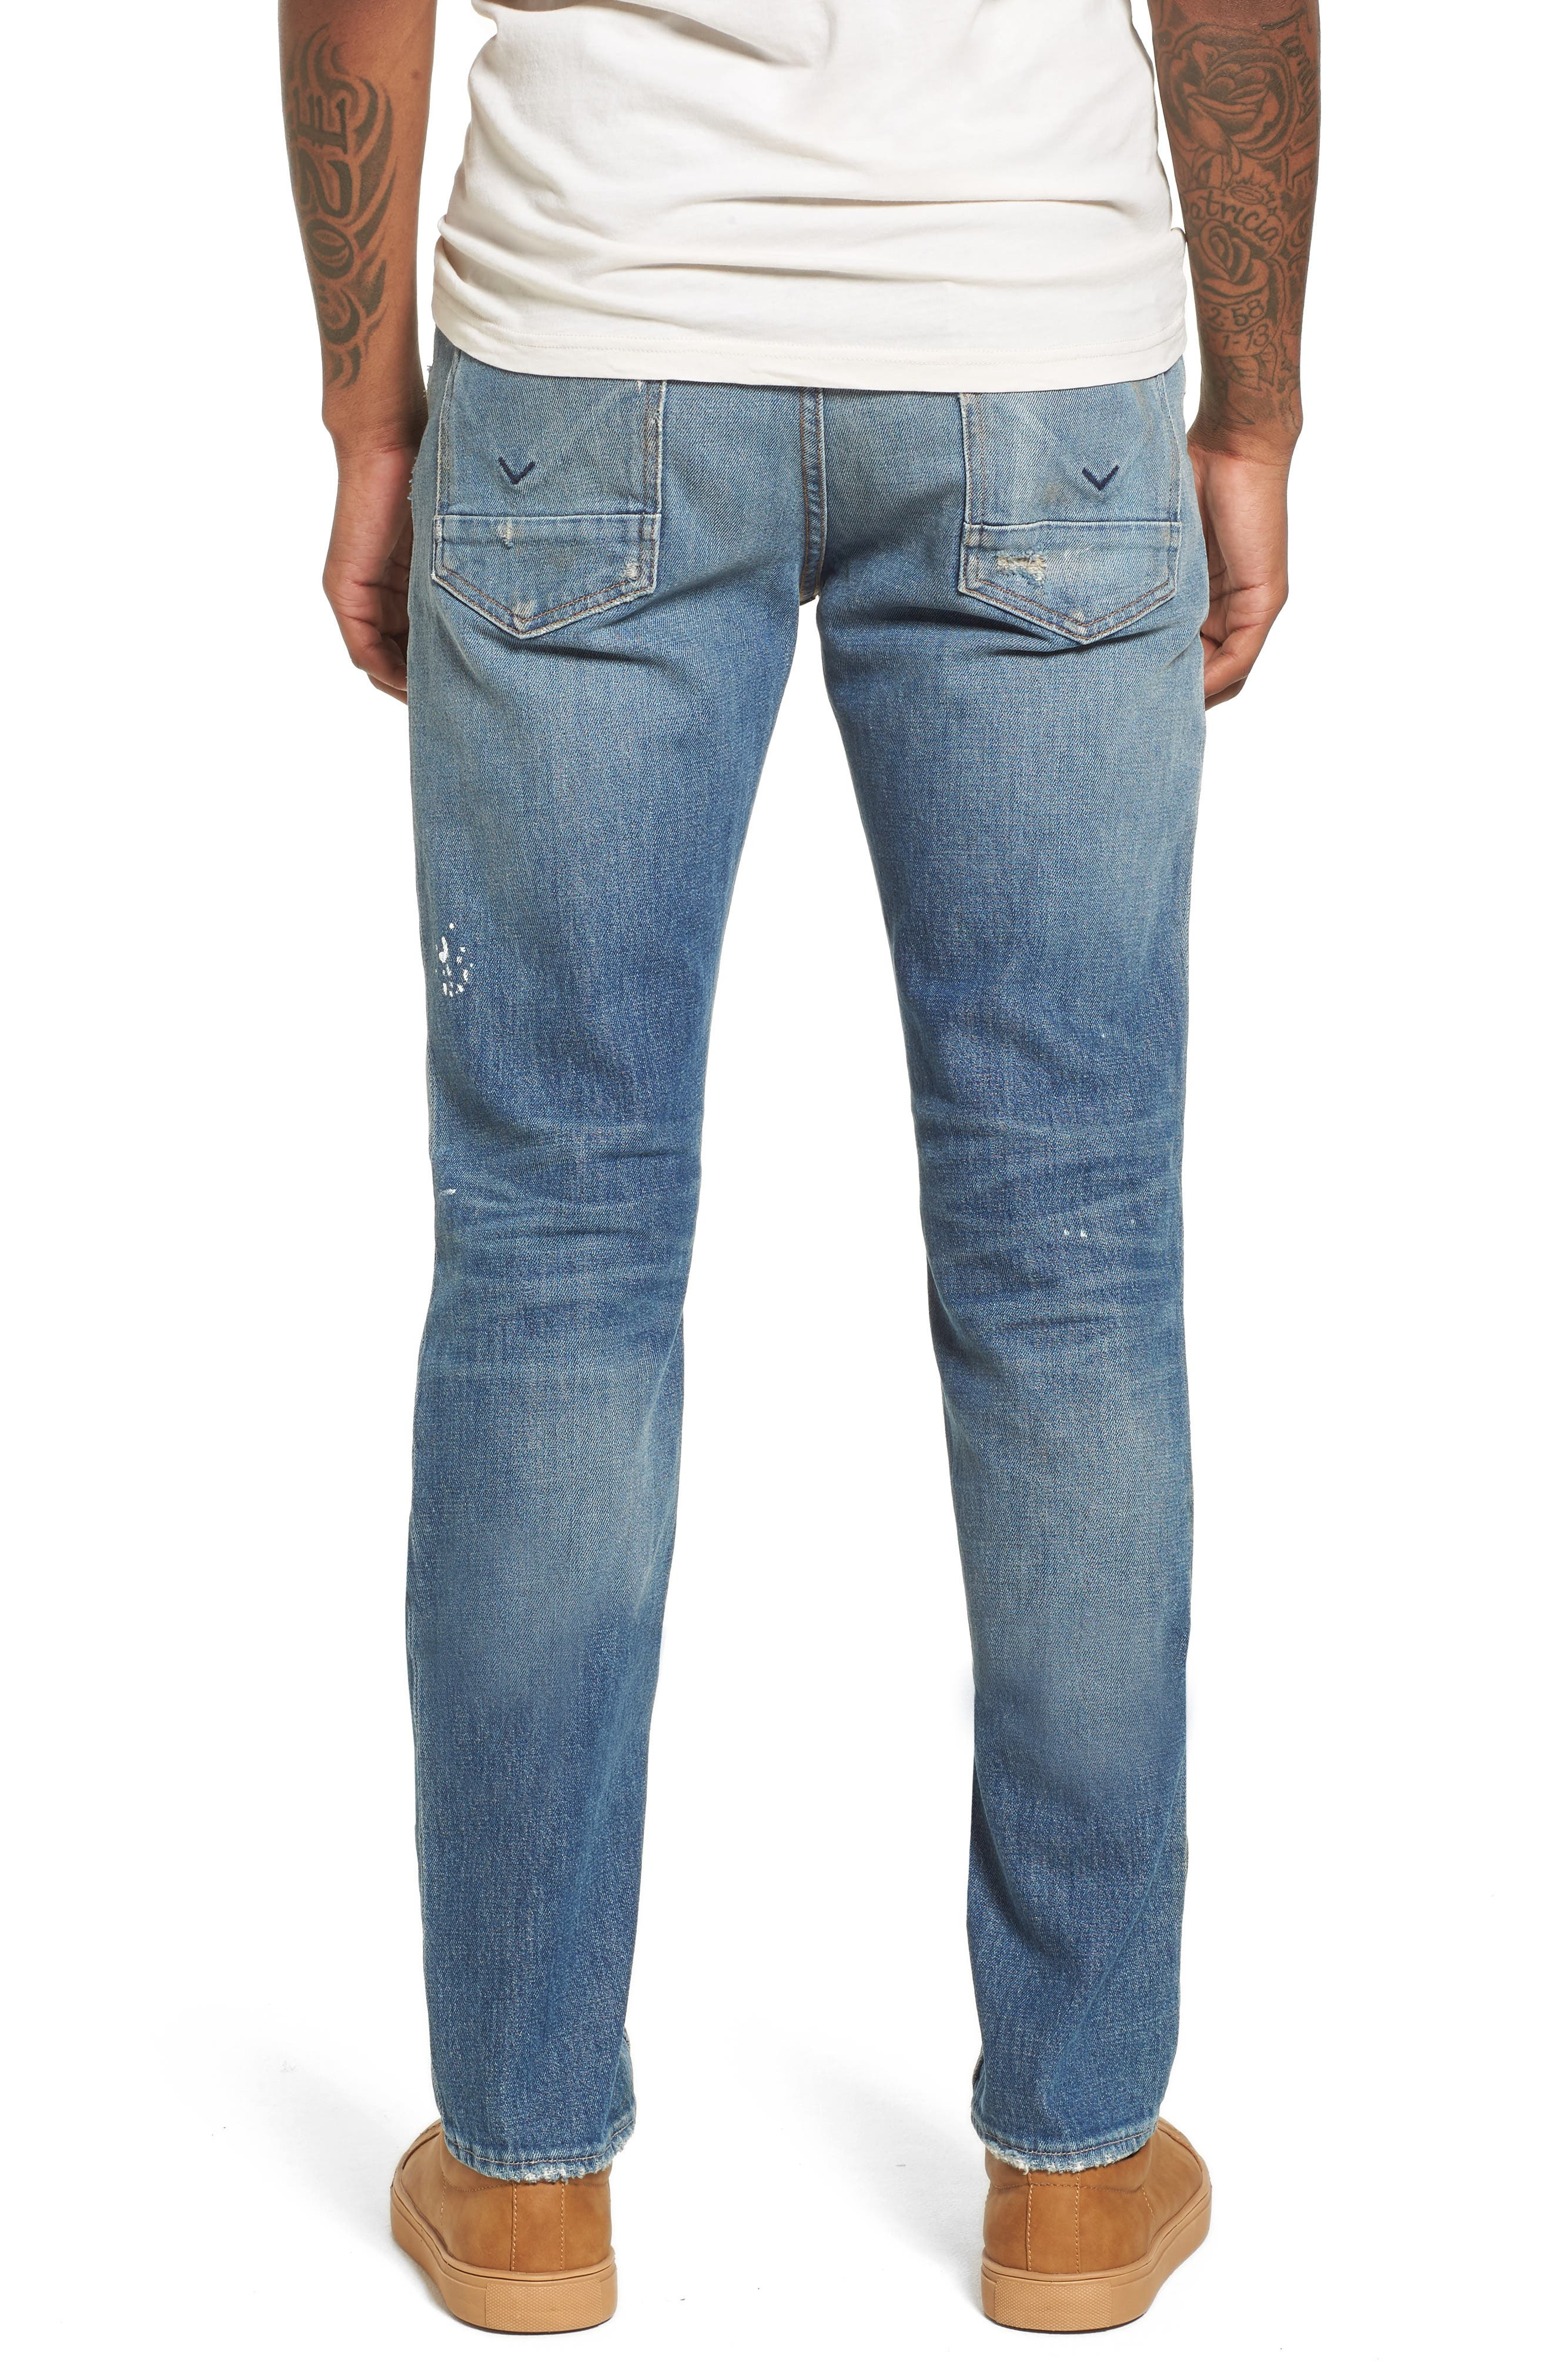 Axl Skinny Fit Jeans,                             Alternate thumbnail 2, color,                             Intoxicate